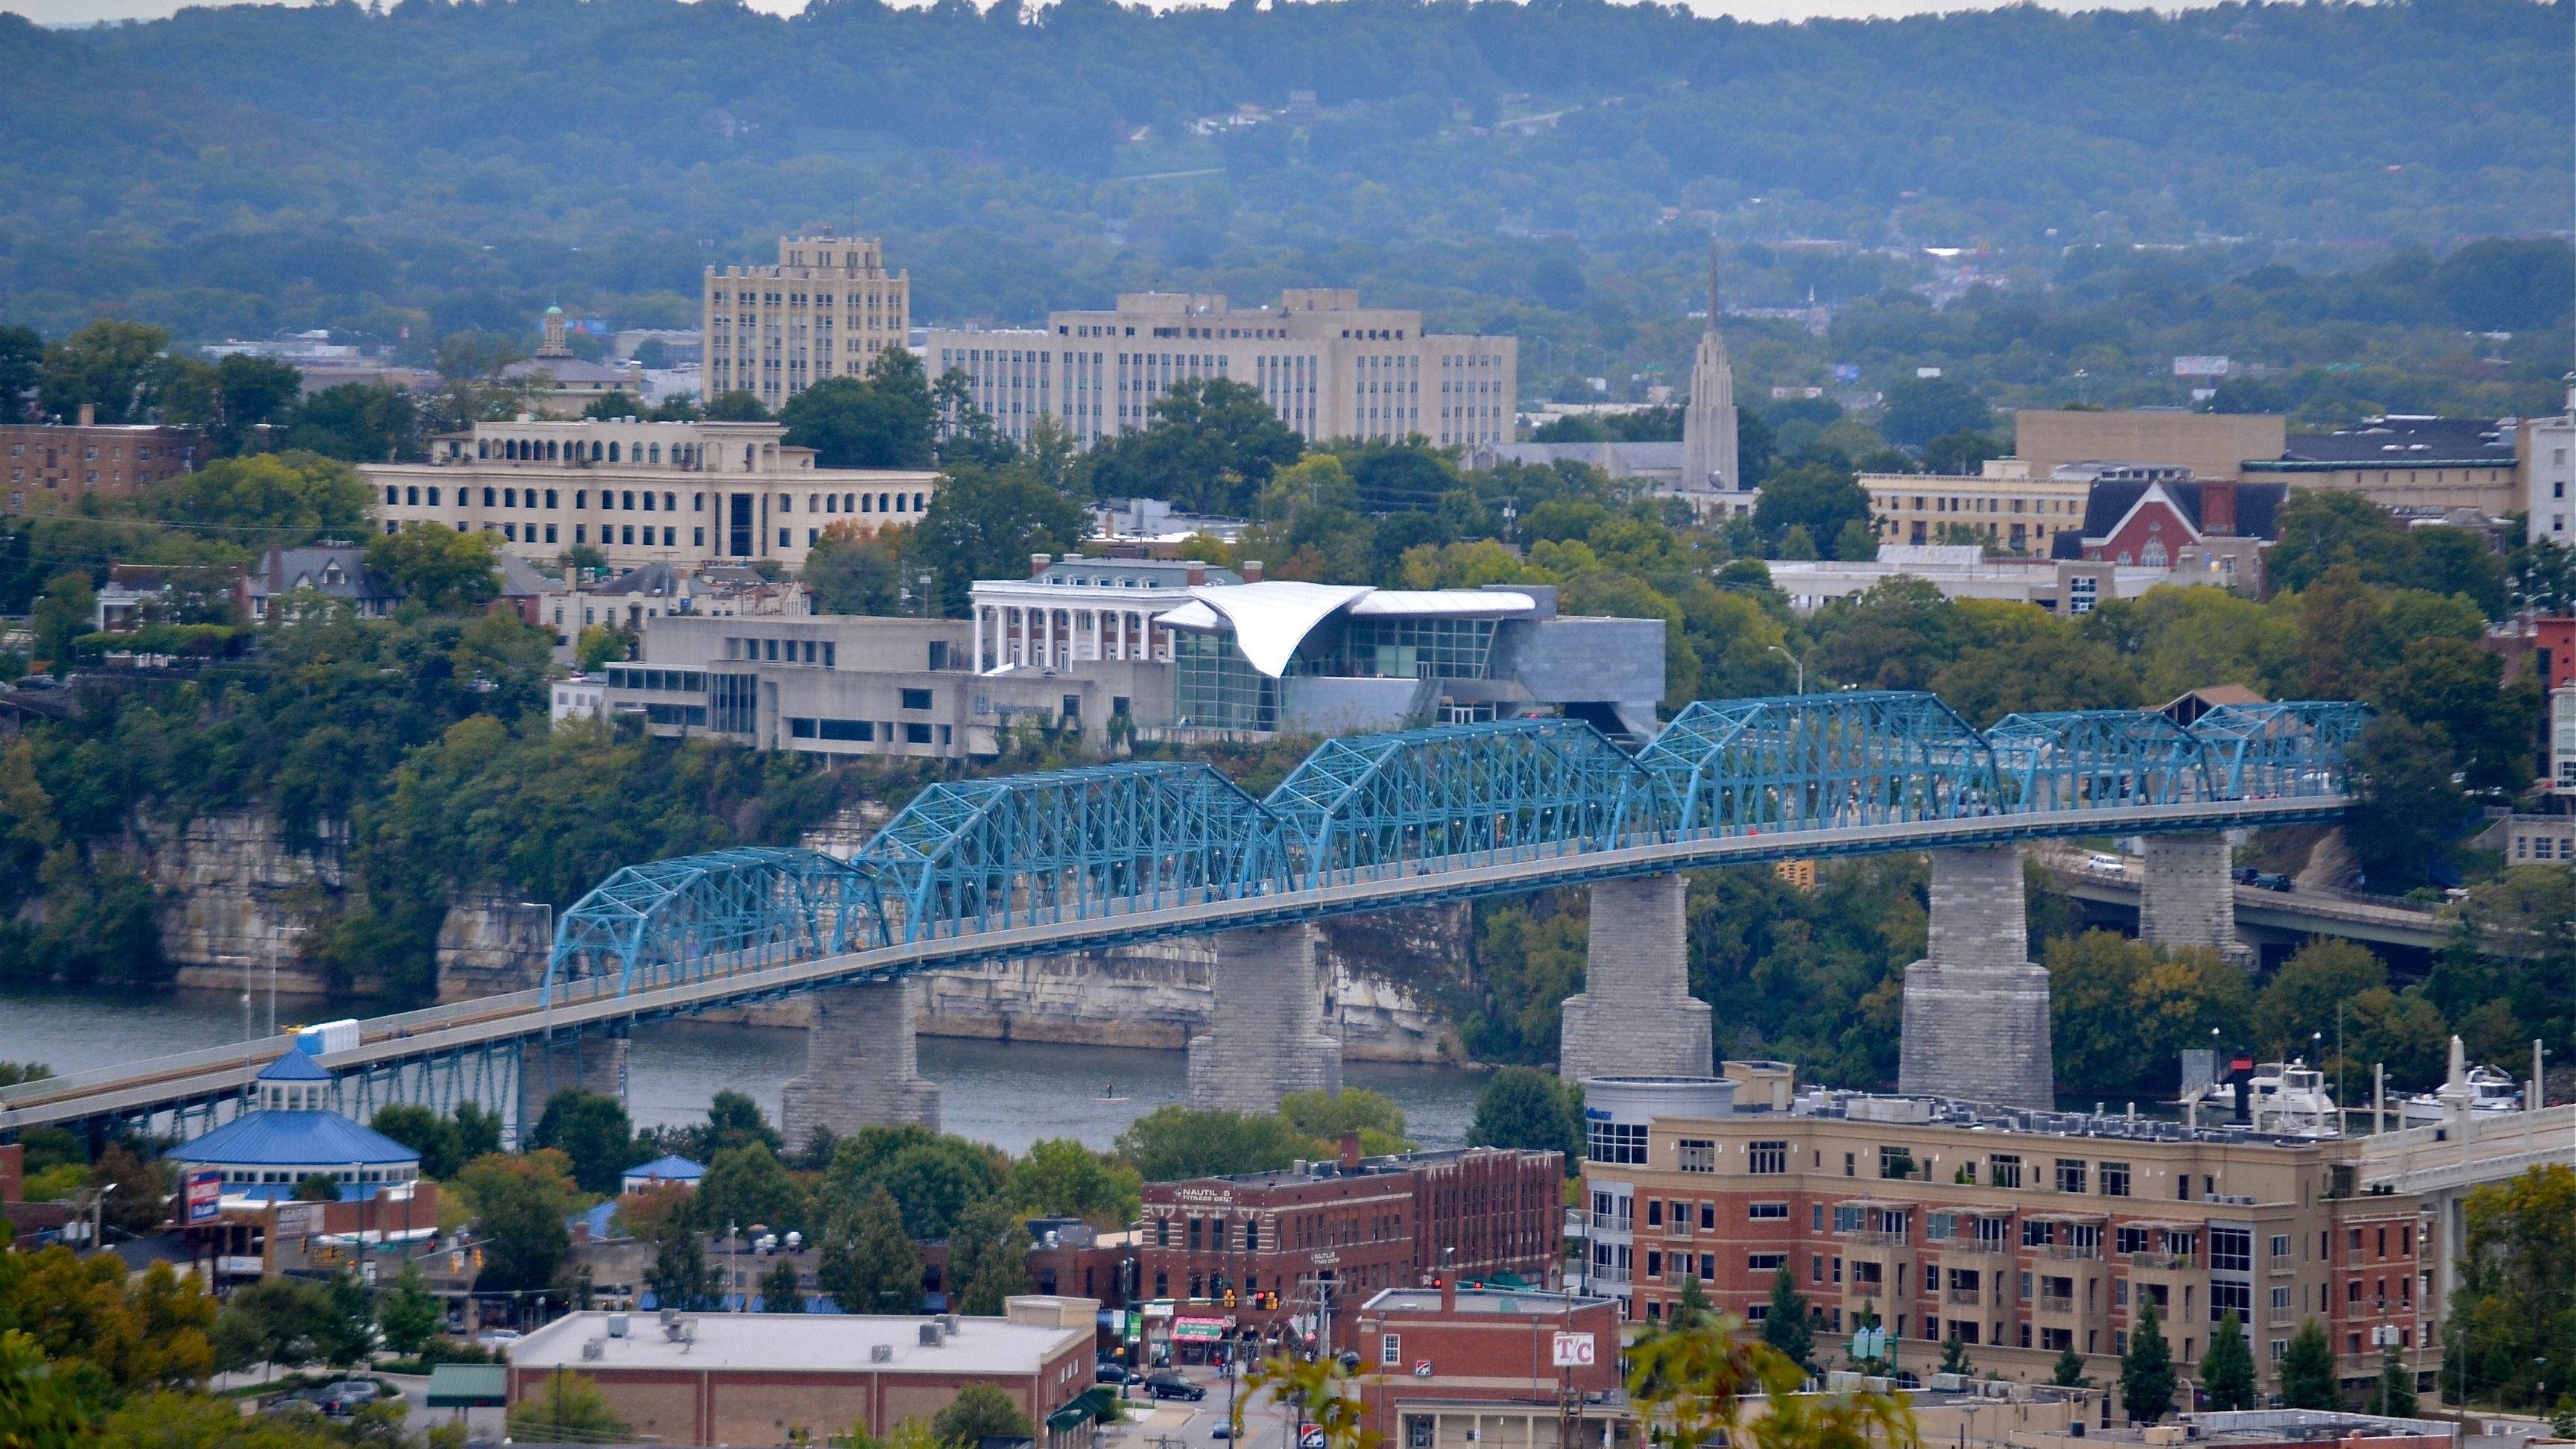 Chattanooga is a city located along the Tennessee River near the southeastern corner of the U.S. state of Tennessee. With an estimated population of 179,139 in 2017,[8] it is the fourth-largest city in Tennessee and one of the two principal cities of East Tennessee, along with Knoxville. Served by multiple railroads and Interstate highways, Chattanooga is a transit hub. Chattanooga lies 120 miles (190 km) northwest of Atlanta, Georgia, 120 miles (190 km) southwest of Knoxville, Tennessee, 135 miles (217 km) southeast of Nashville, Tennessee, 120 miles (190 km) northeast of Huntsville, Alabama, and 148 miles (238 km) northeast of Birmingham, Alabama.